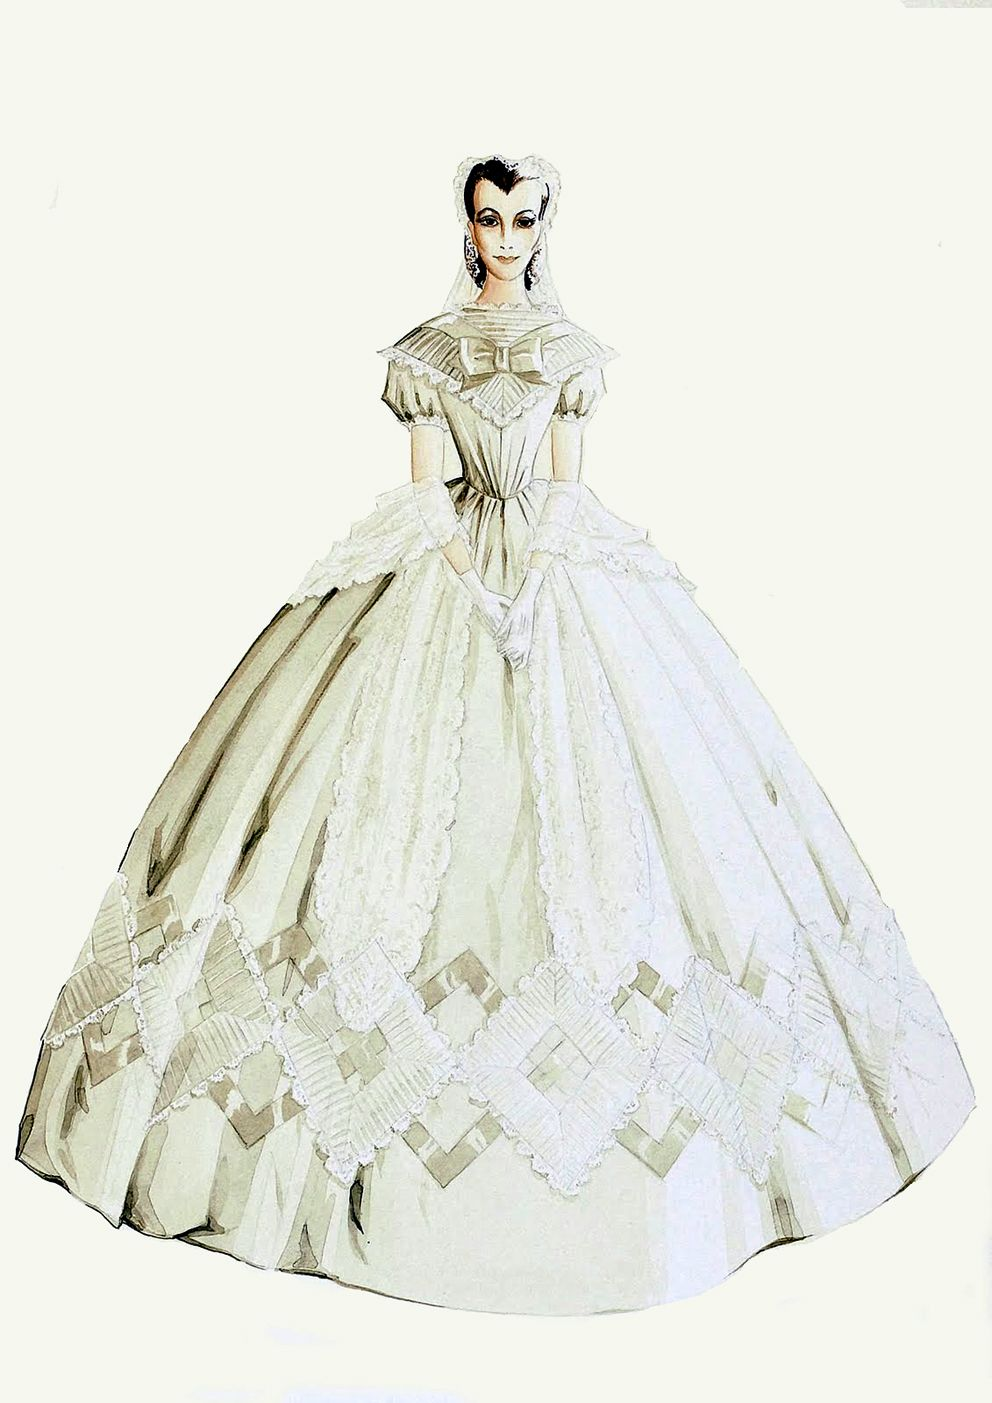 walter plunkett costume sketches for gwtw - Google Search | Gone ...